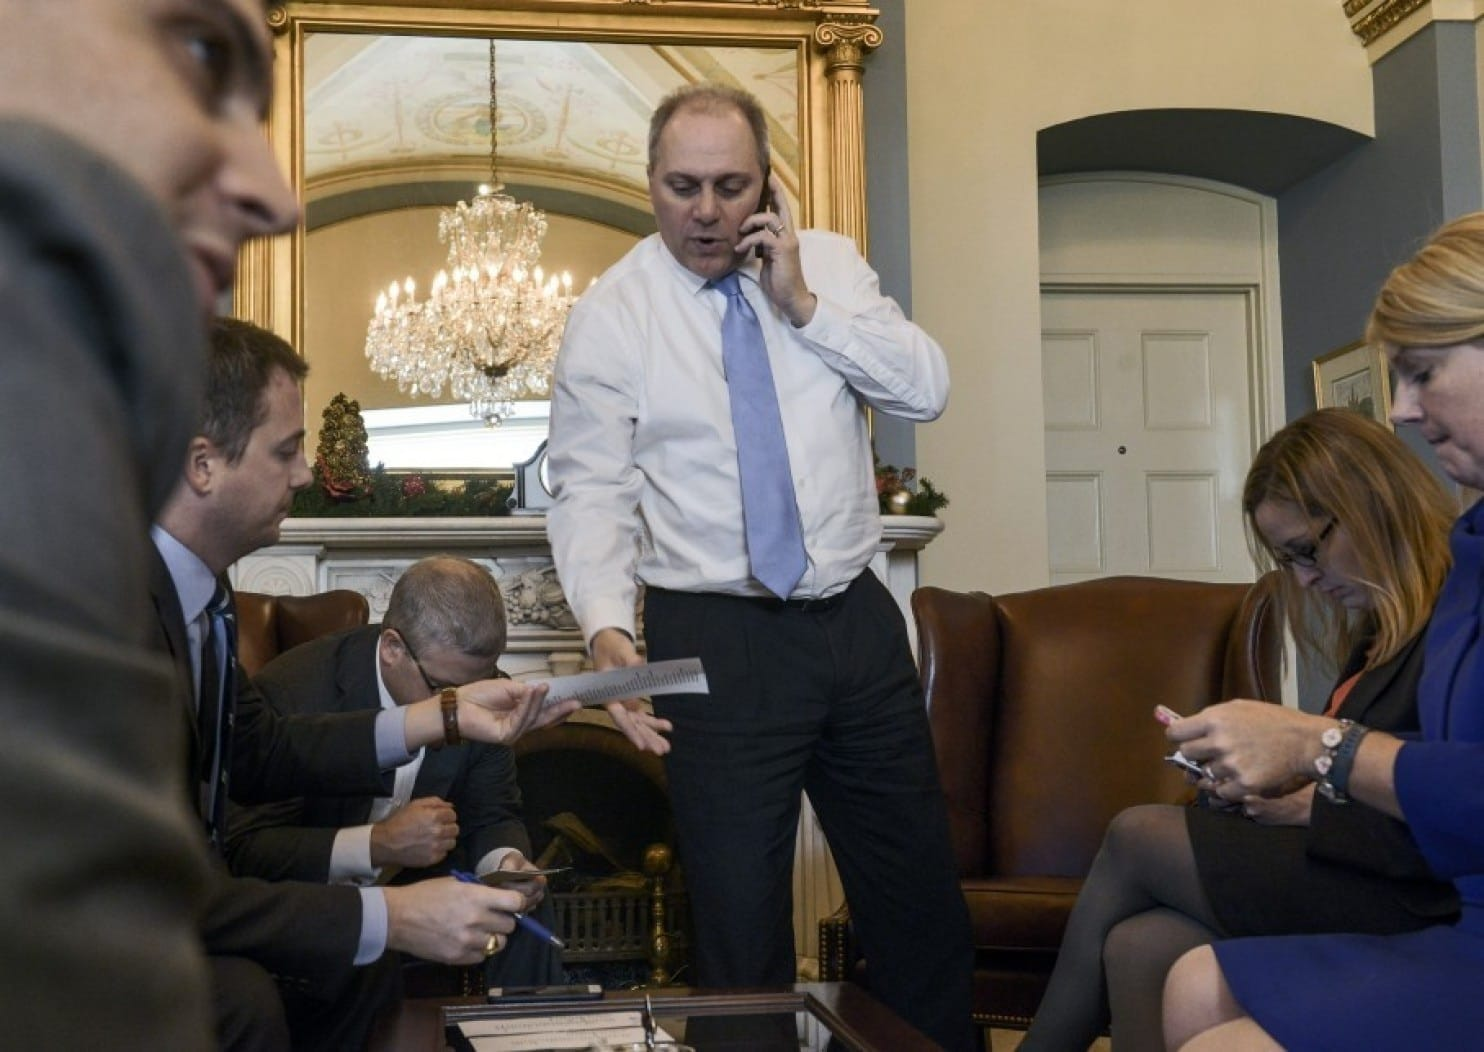 House Majority Whip Steve Scalise (center) meets with staff while checking on his vote count on Dec. 11, 2014, in his Capitol office. (Photo by Bill O'Leary/The Washington Post)